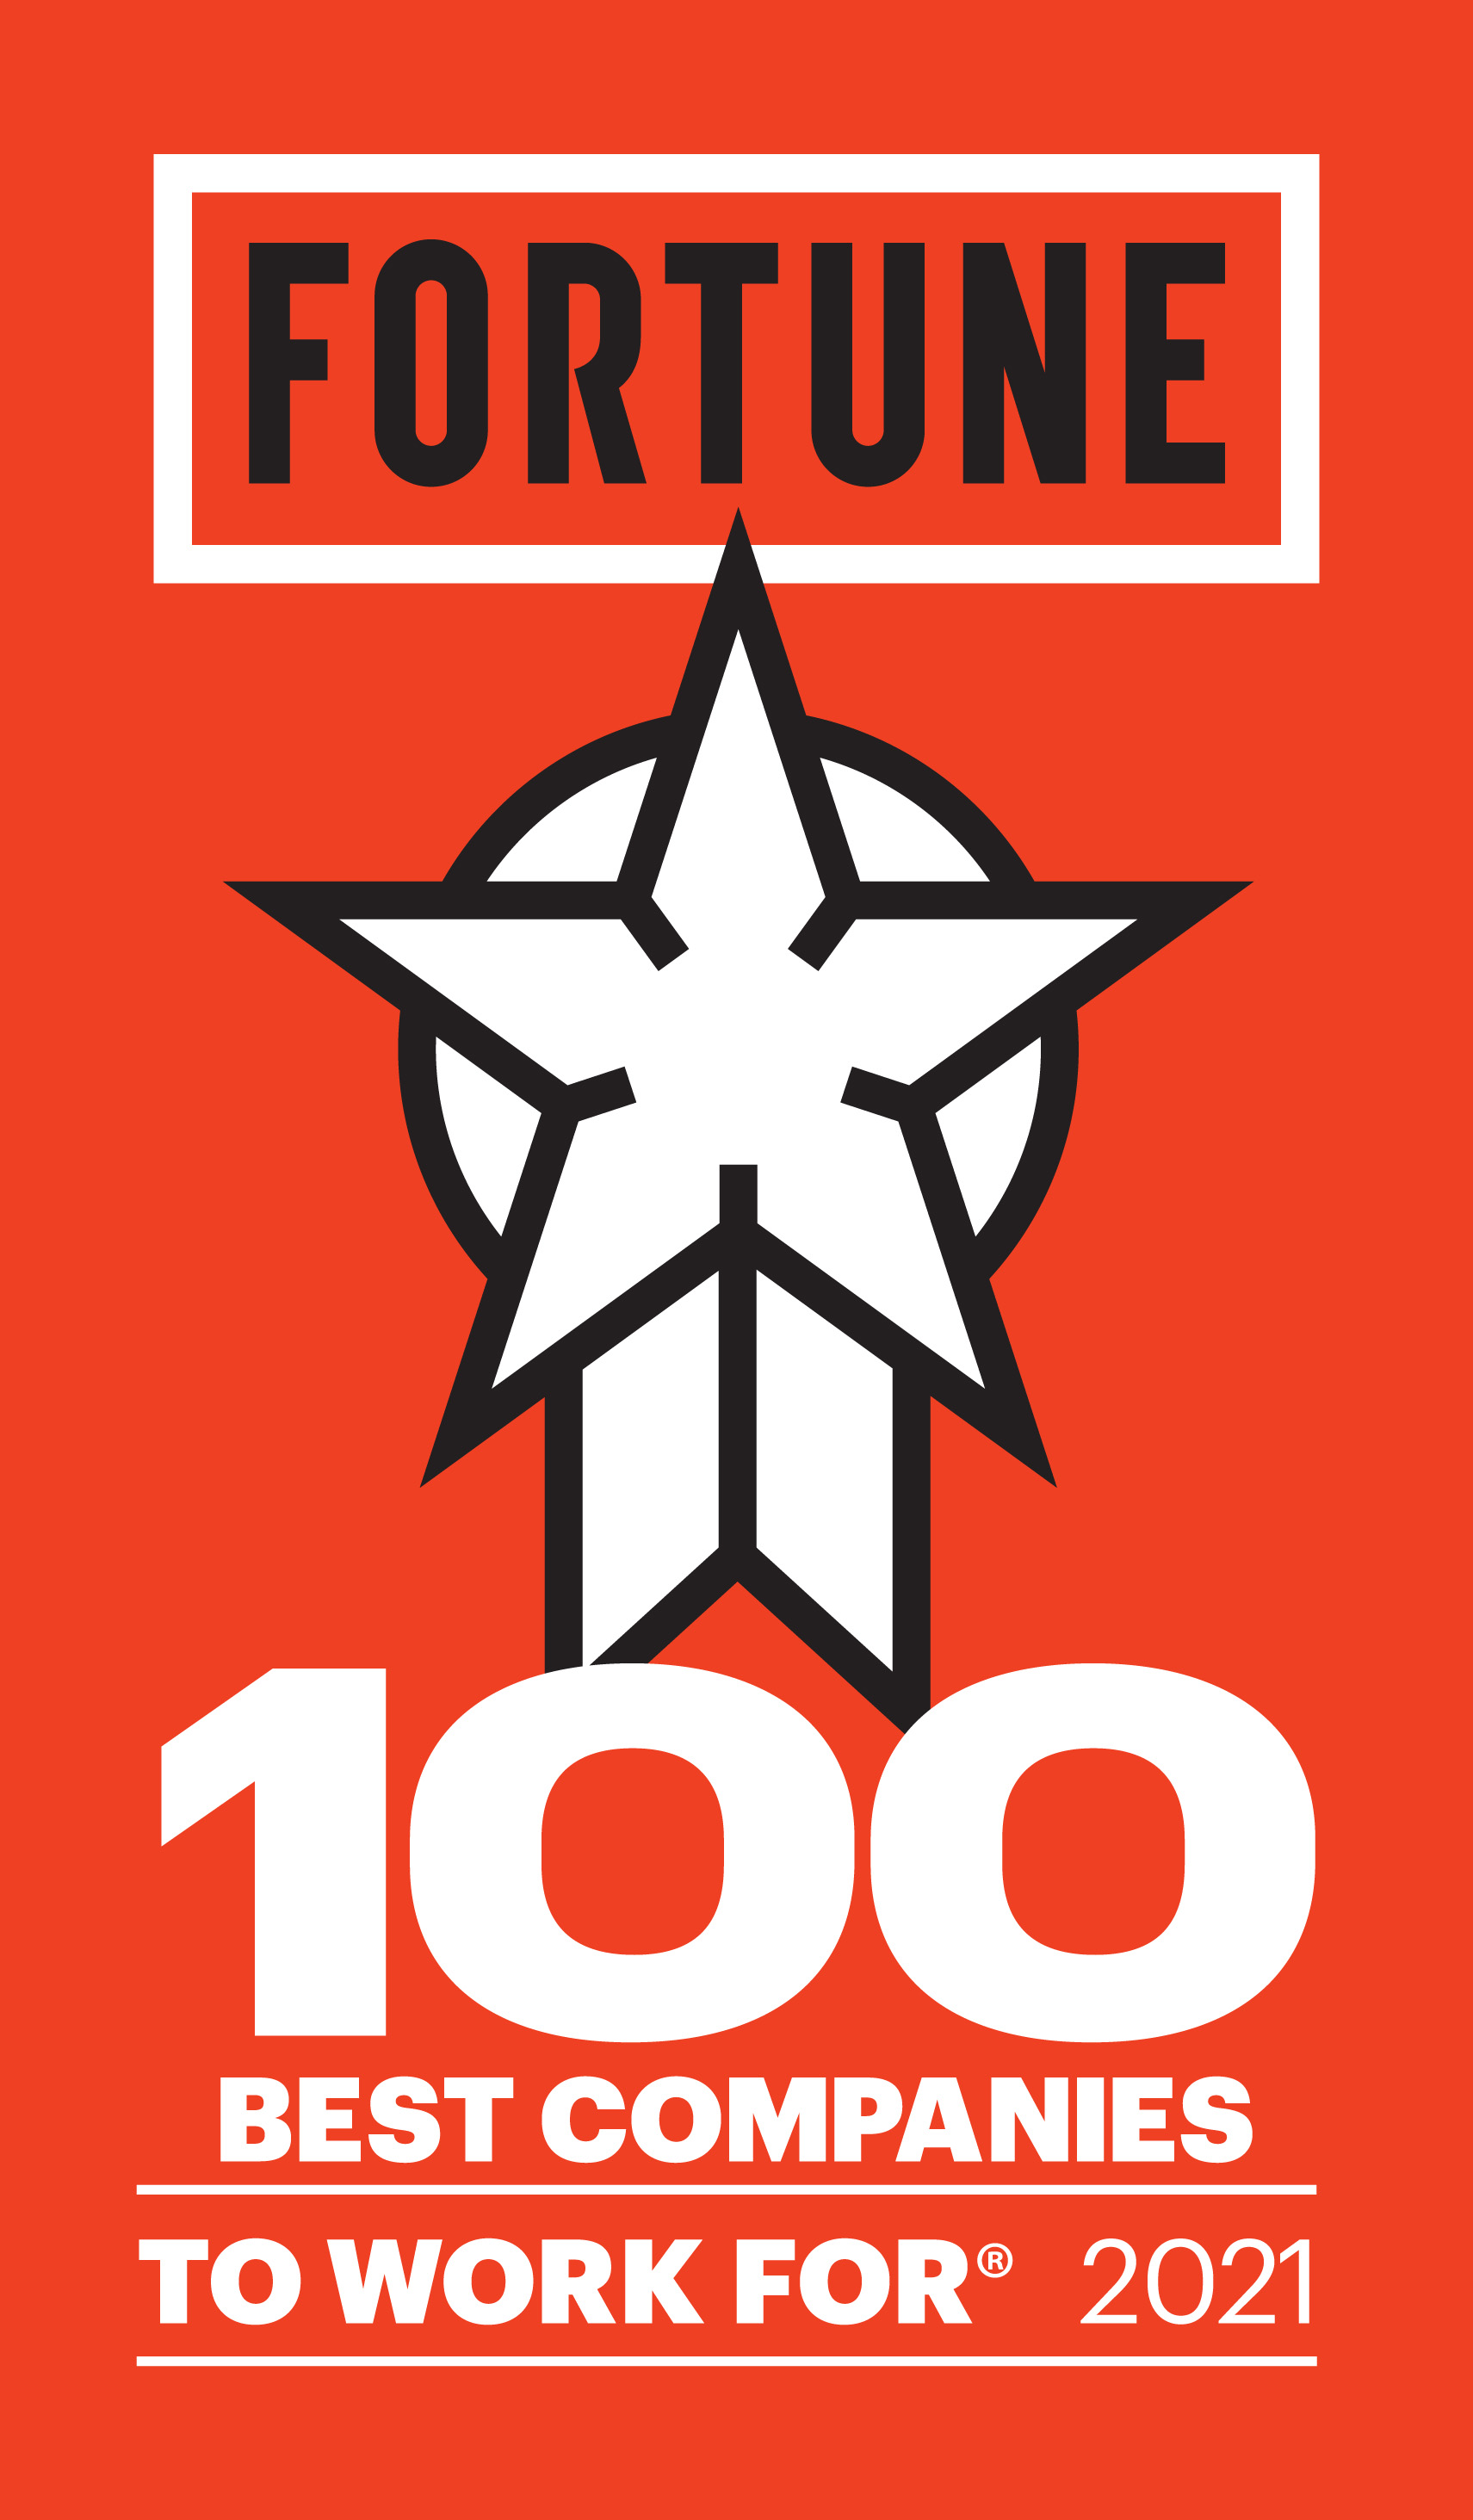 Fortune 100 Best Companies to Work For 2021. 23 years on the list.